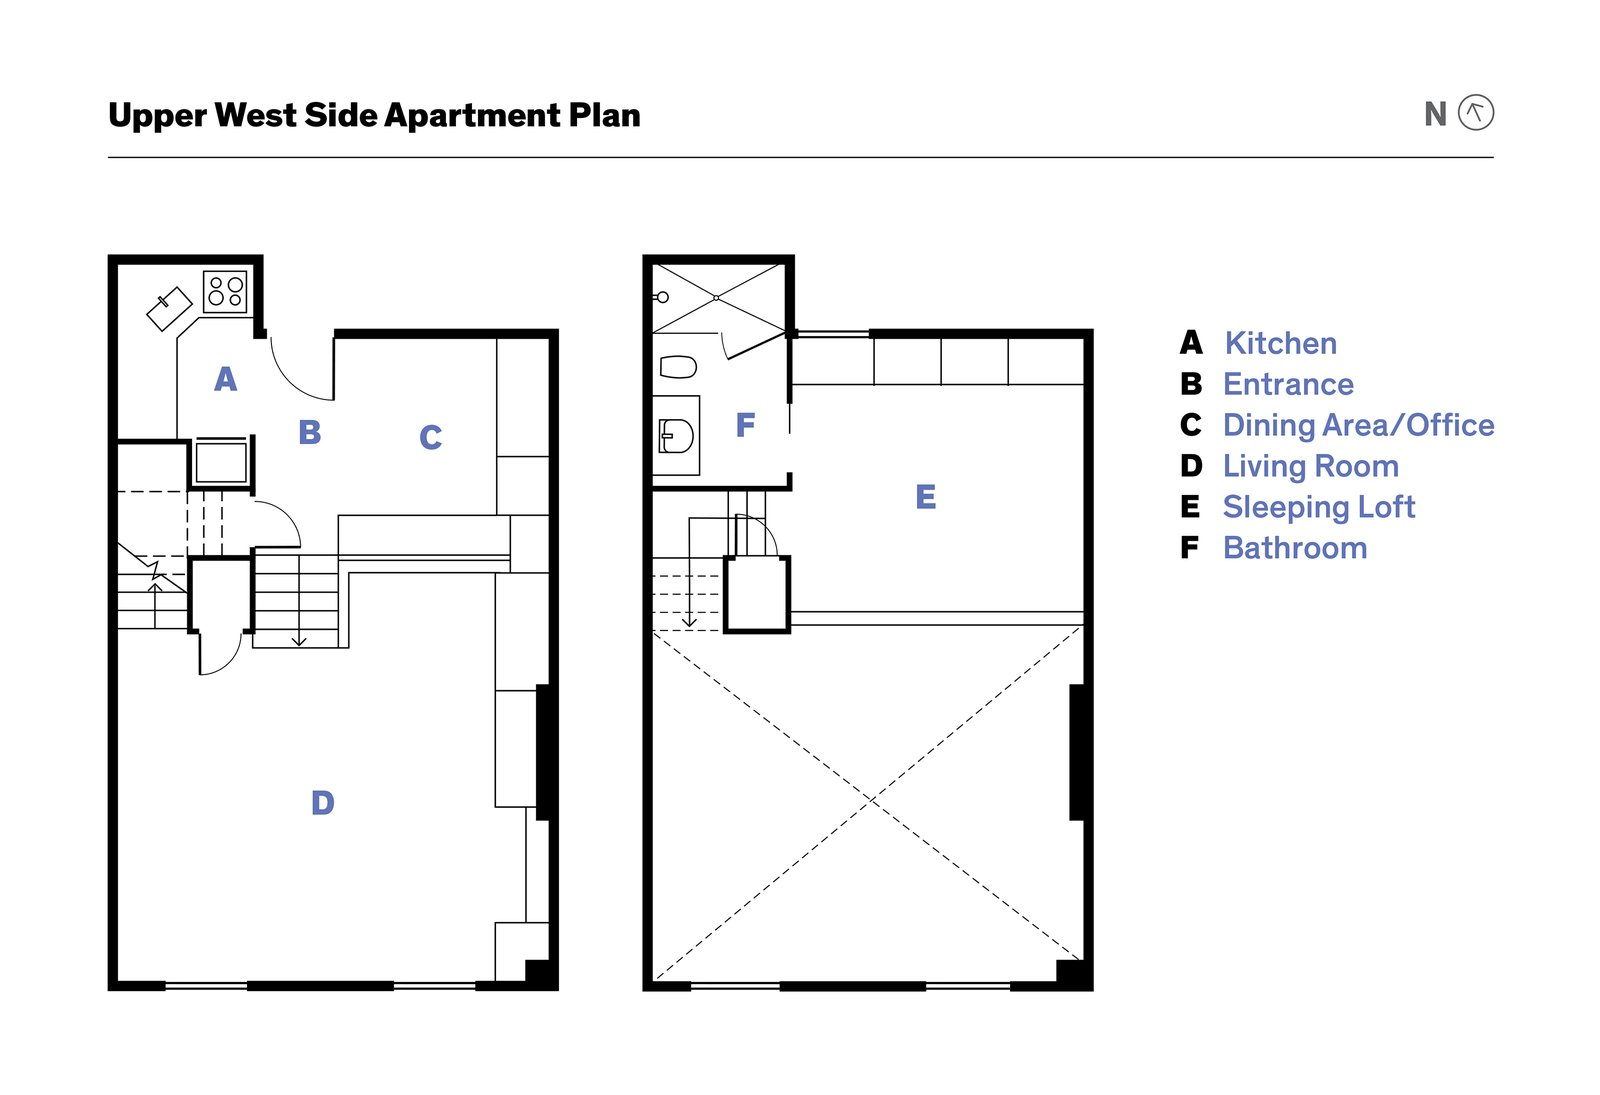 Photo 9 of 9 in A 16-Foot-Wide Triplex Is Cleverly Reconfigured to Feel Extra Spacious